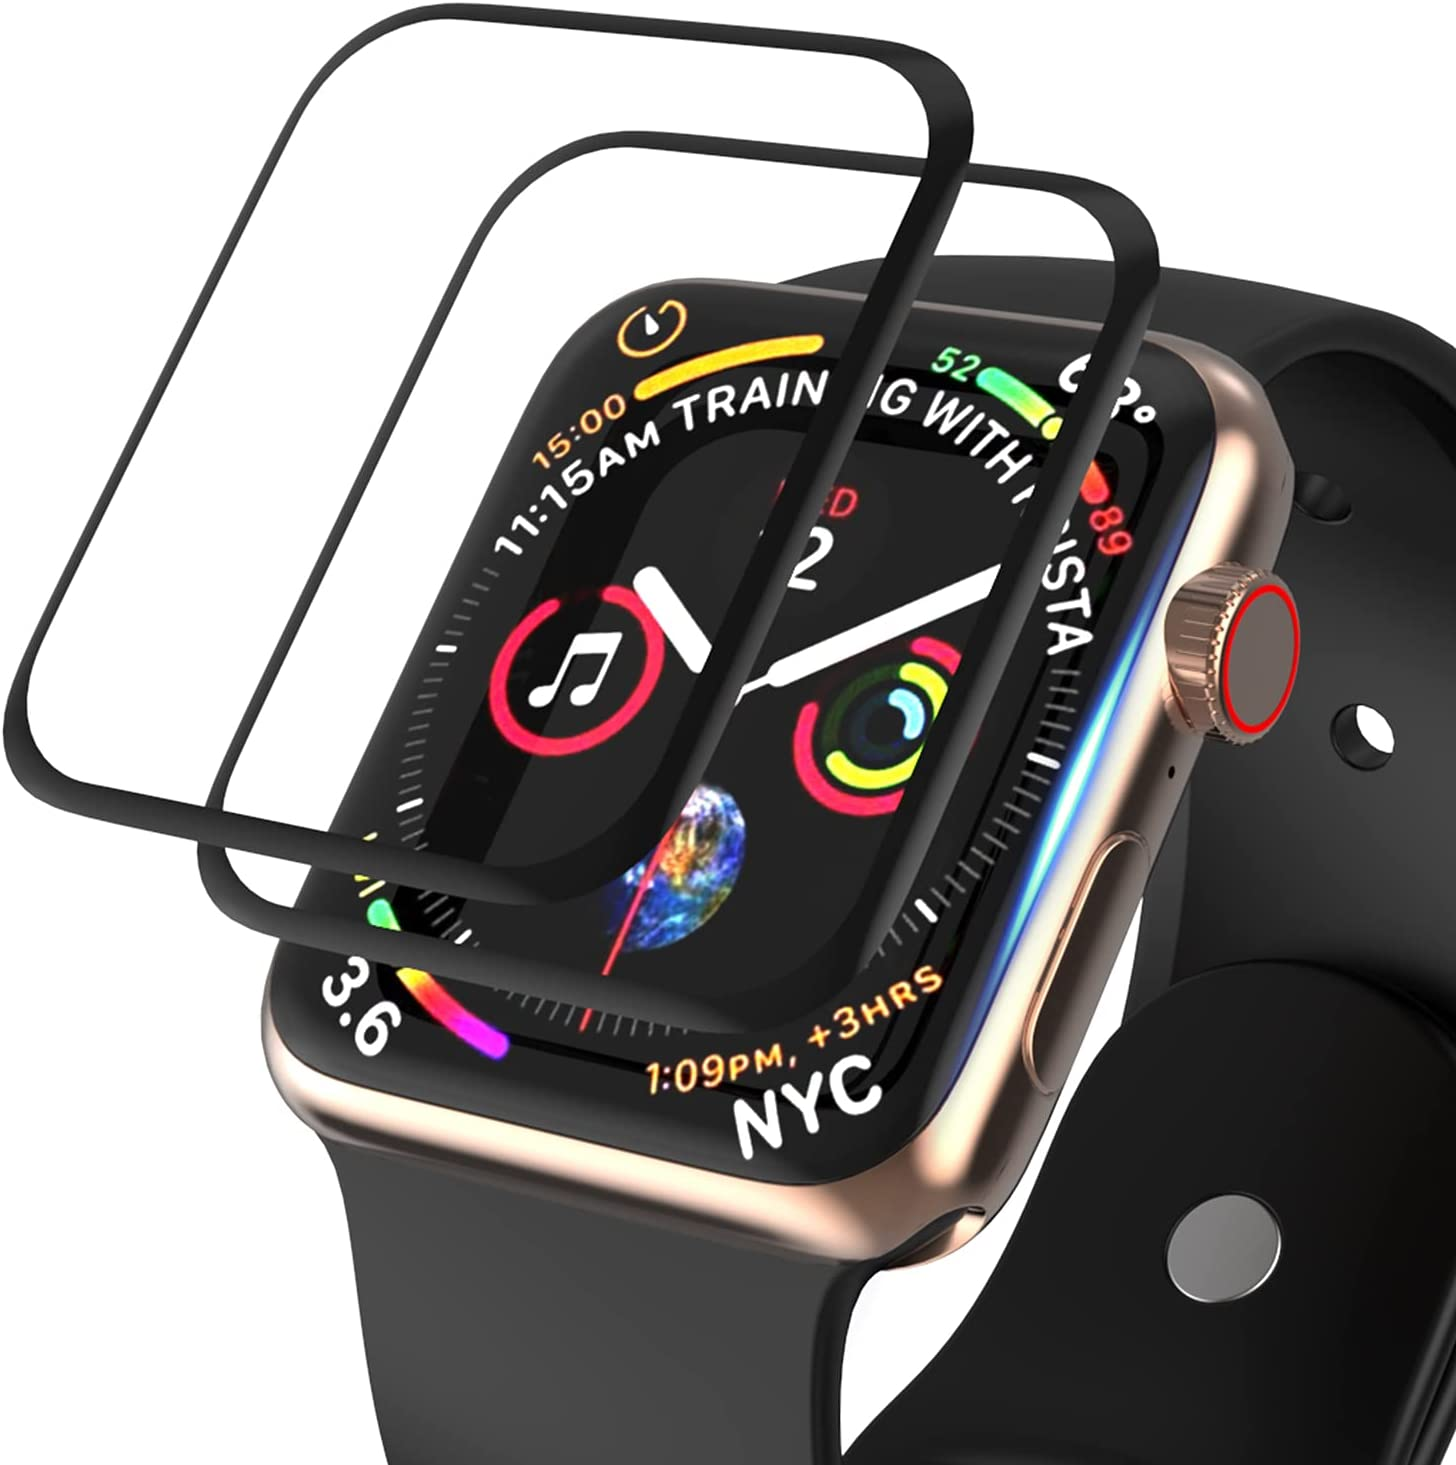 [2 Pack] Tempered Glass Screen Protector Compatible for Apple Watch 44mm SE Series 6 Series 5 Series 4, FIFCHALL 3D Curved Edge [Full Coverage] HD Clear Screen Film for iWatch Accessories